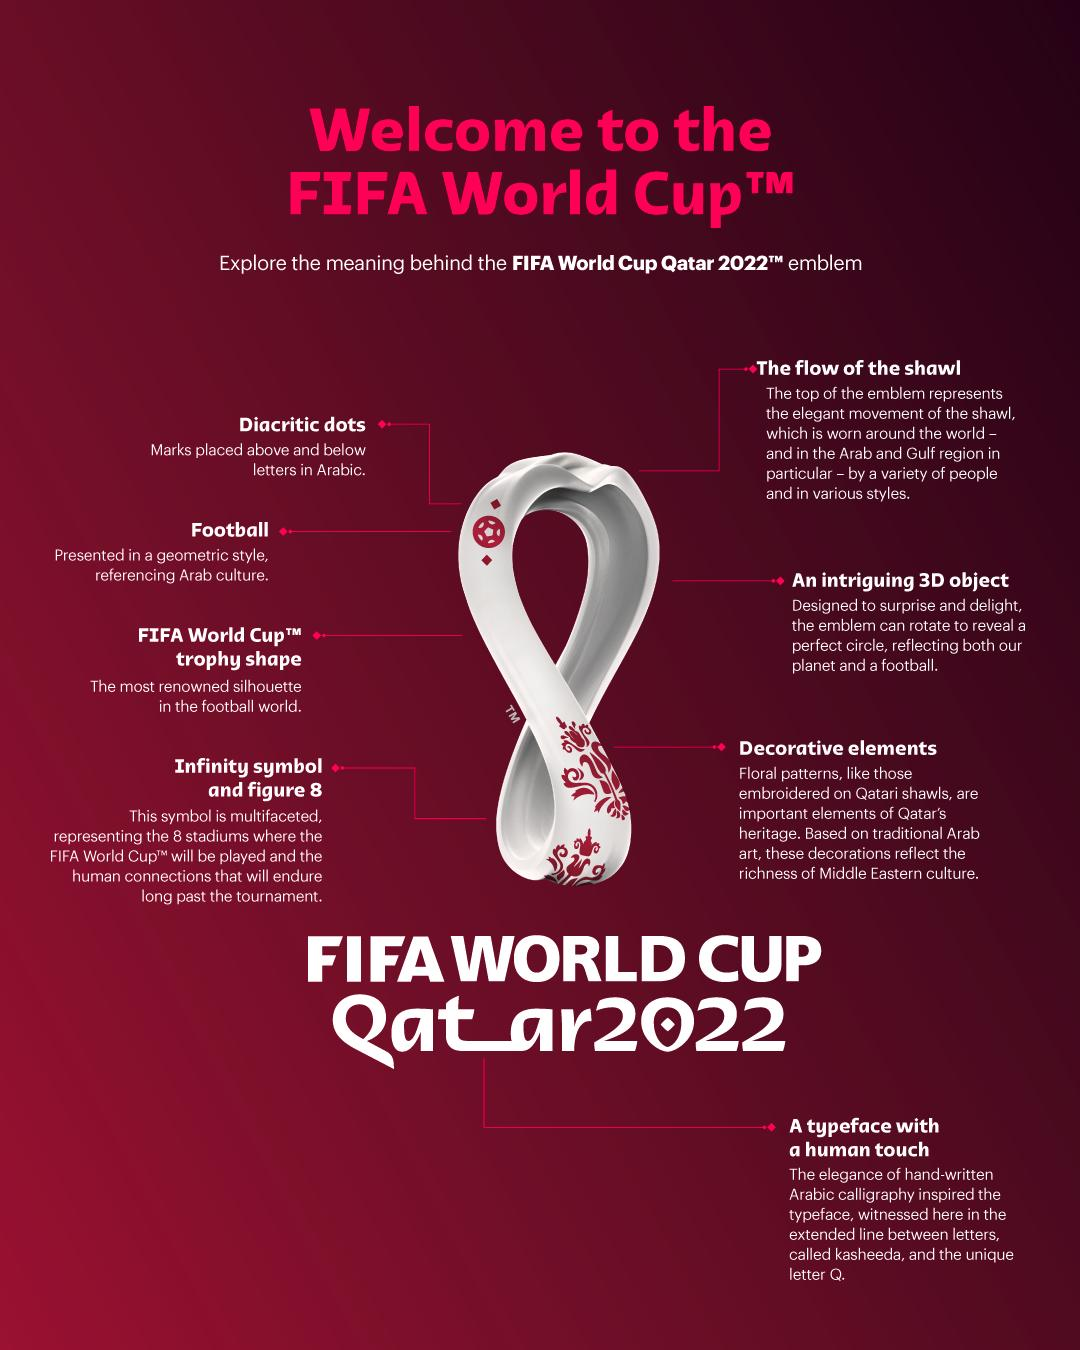 Qatar 2022 FIFA World Cup Official Emblem Revealed